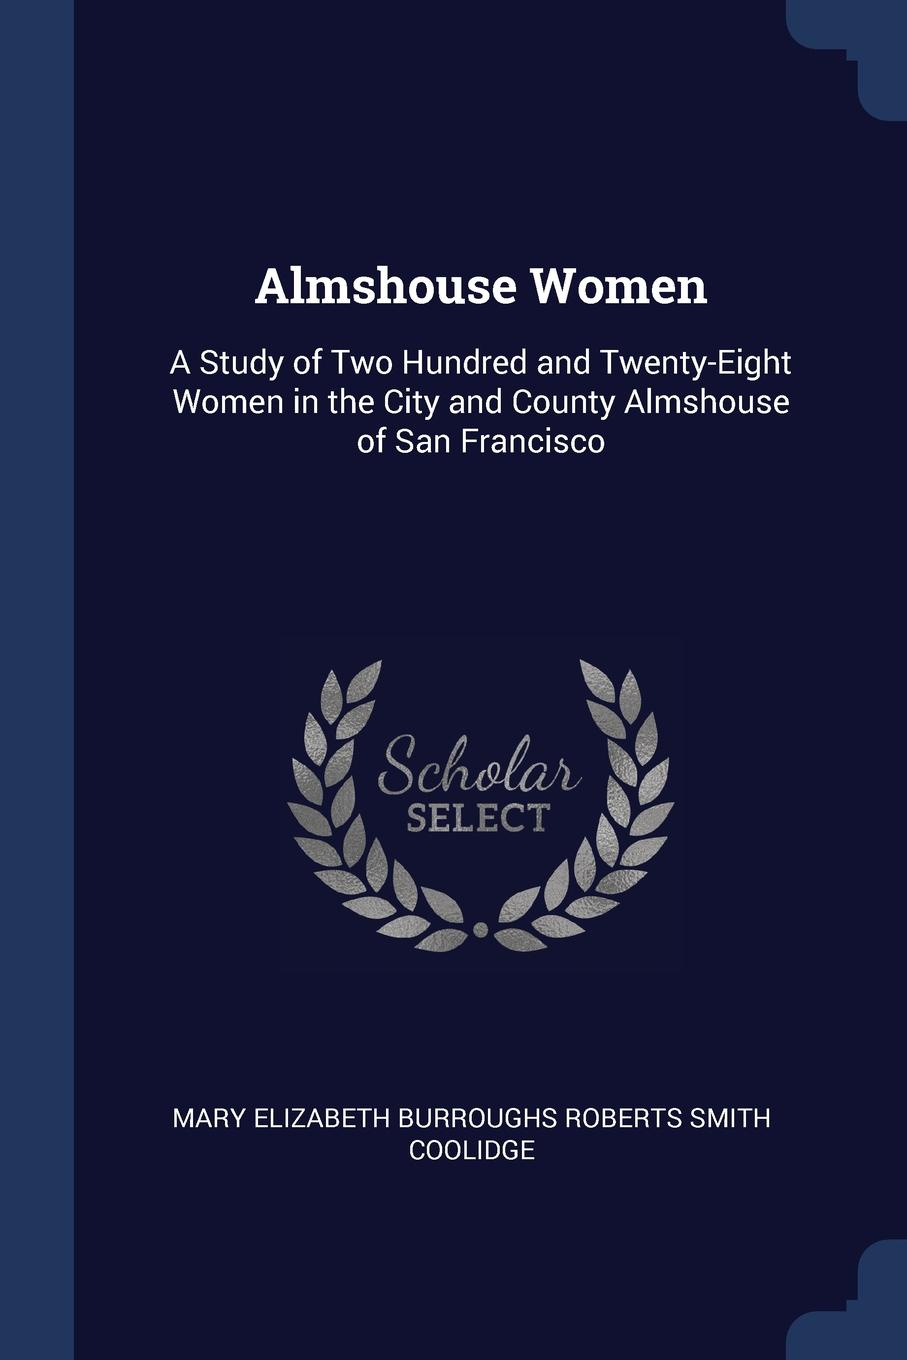 Almshouse Women. A Study of Two Hundred and Twenty-Eight Women in the City and County Almshouse of San Francisco. Mary Elizabeth Burroughs Rober Coolidge